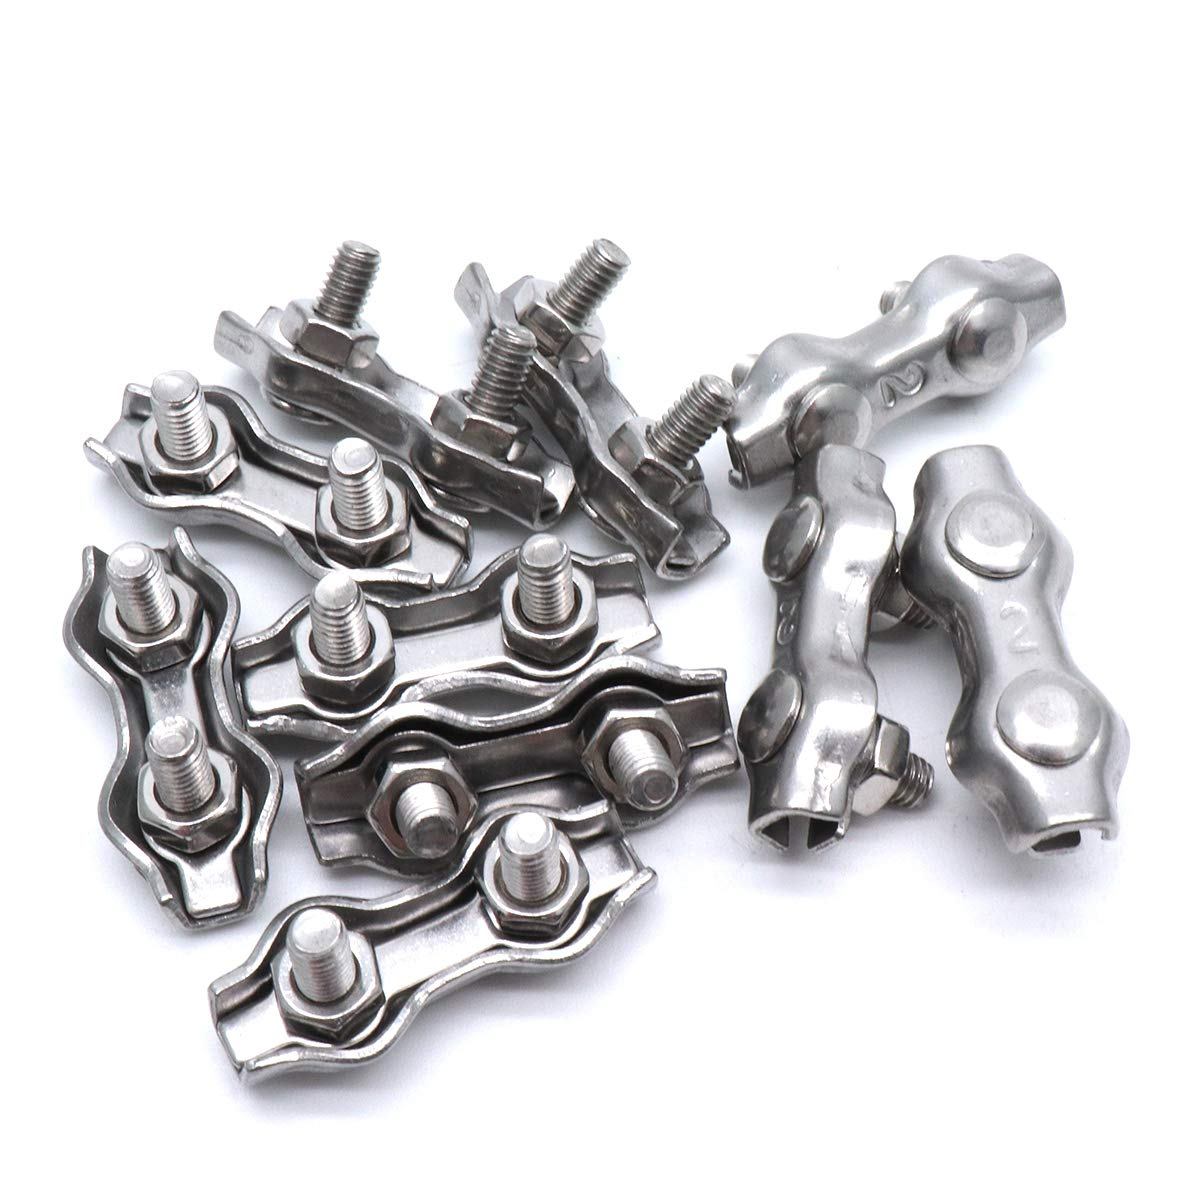 M2 304 Stainless Steel Duplex Wire Rope Clip Cable Clamps For Wire Cables 10PCS